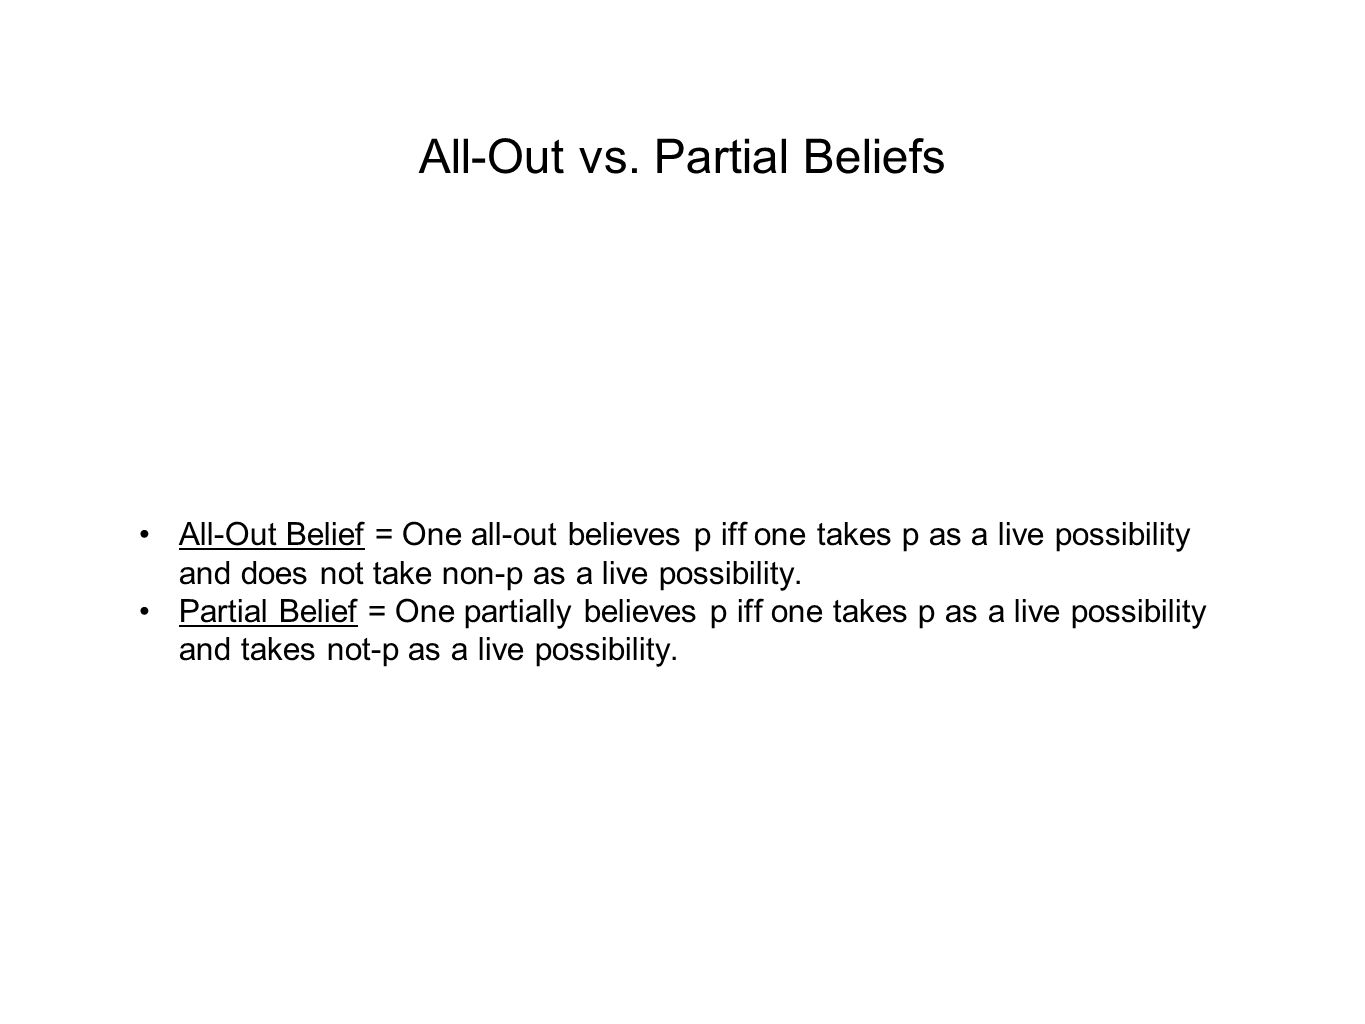 All-Out vs. Partial Beliefs